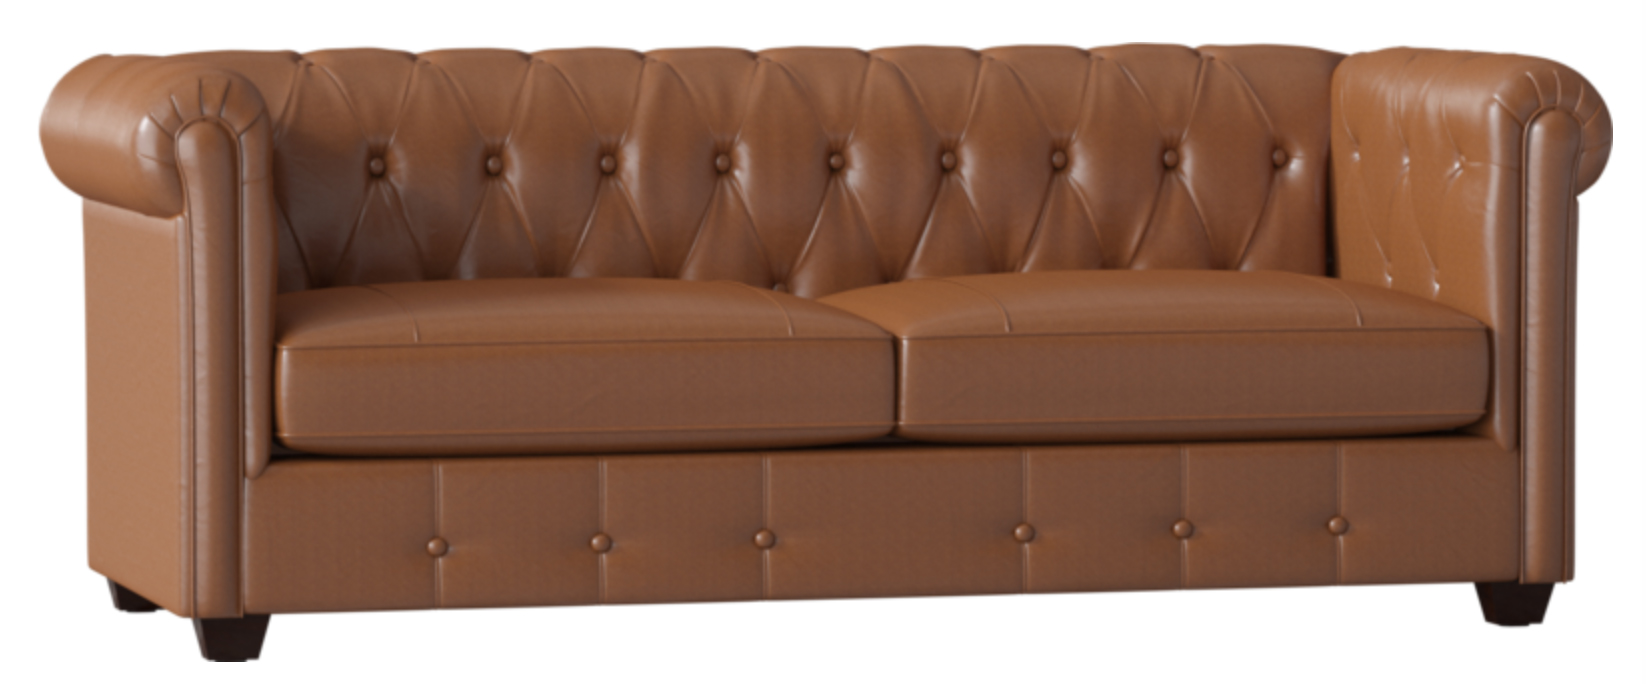 Birch Lane Hawthorn Leather Chesterfield Sofa